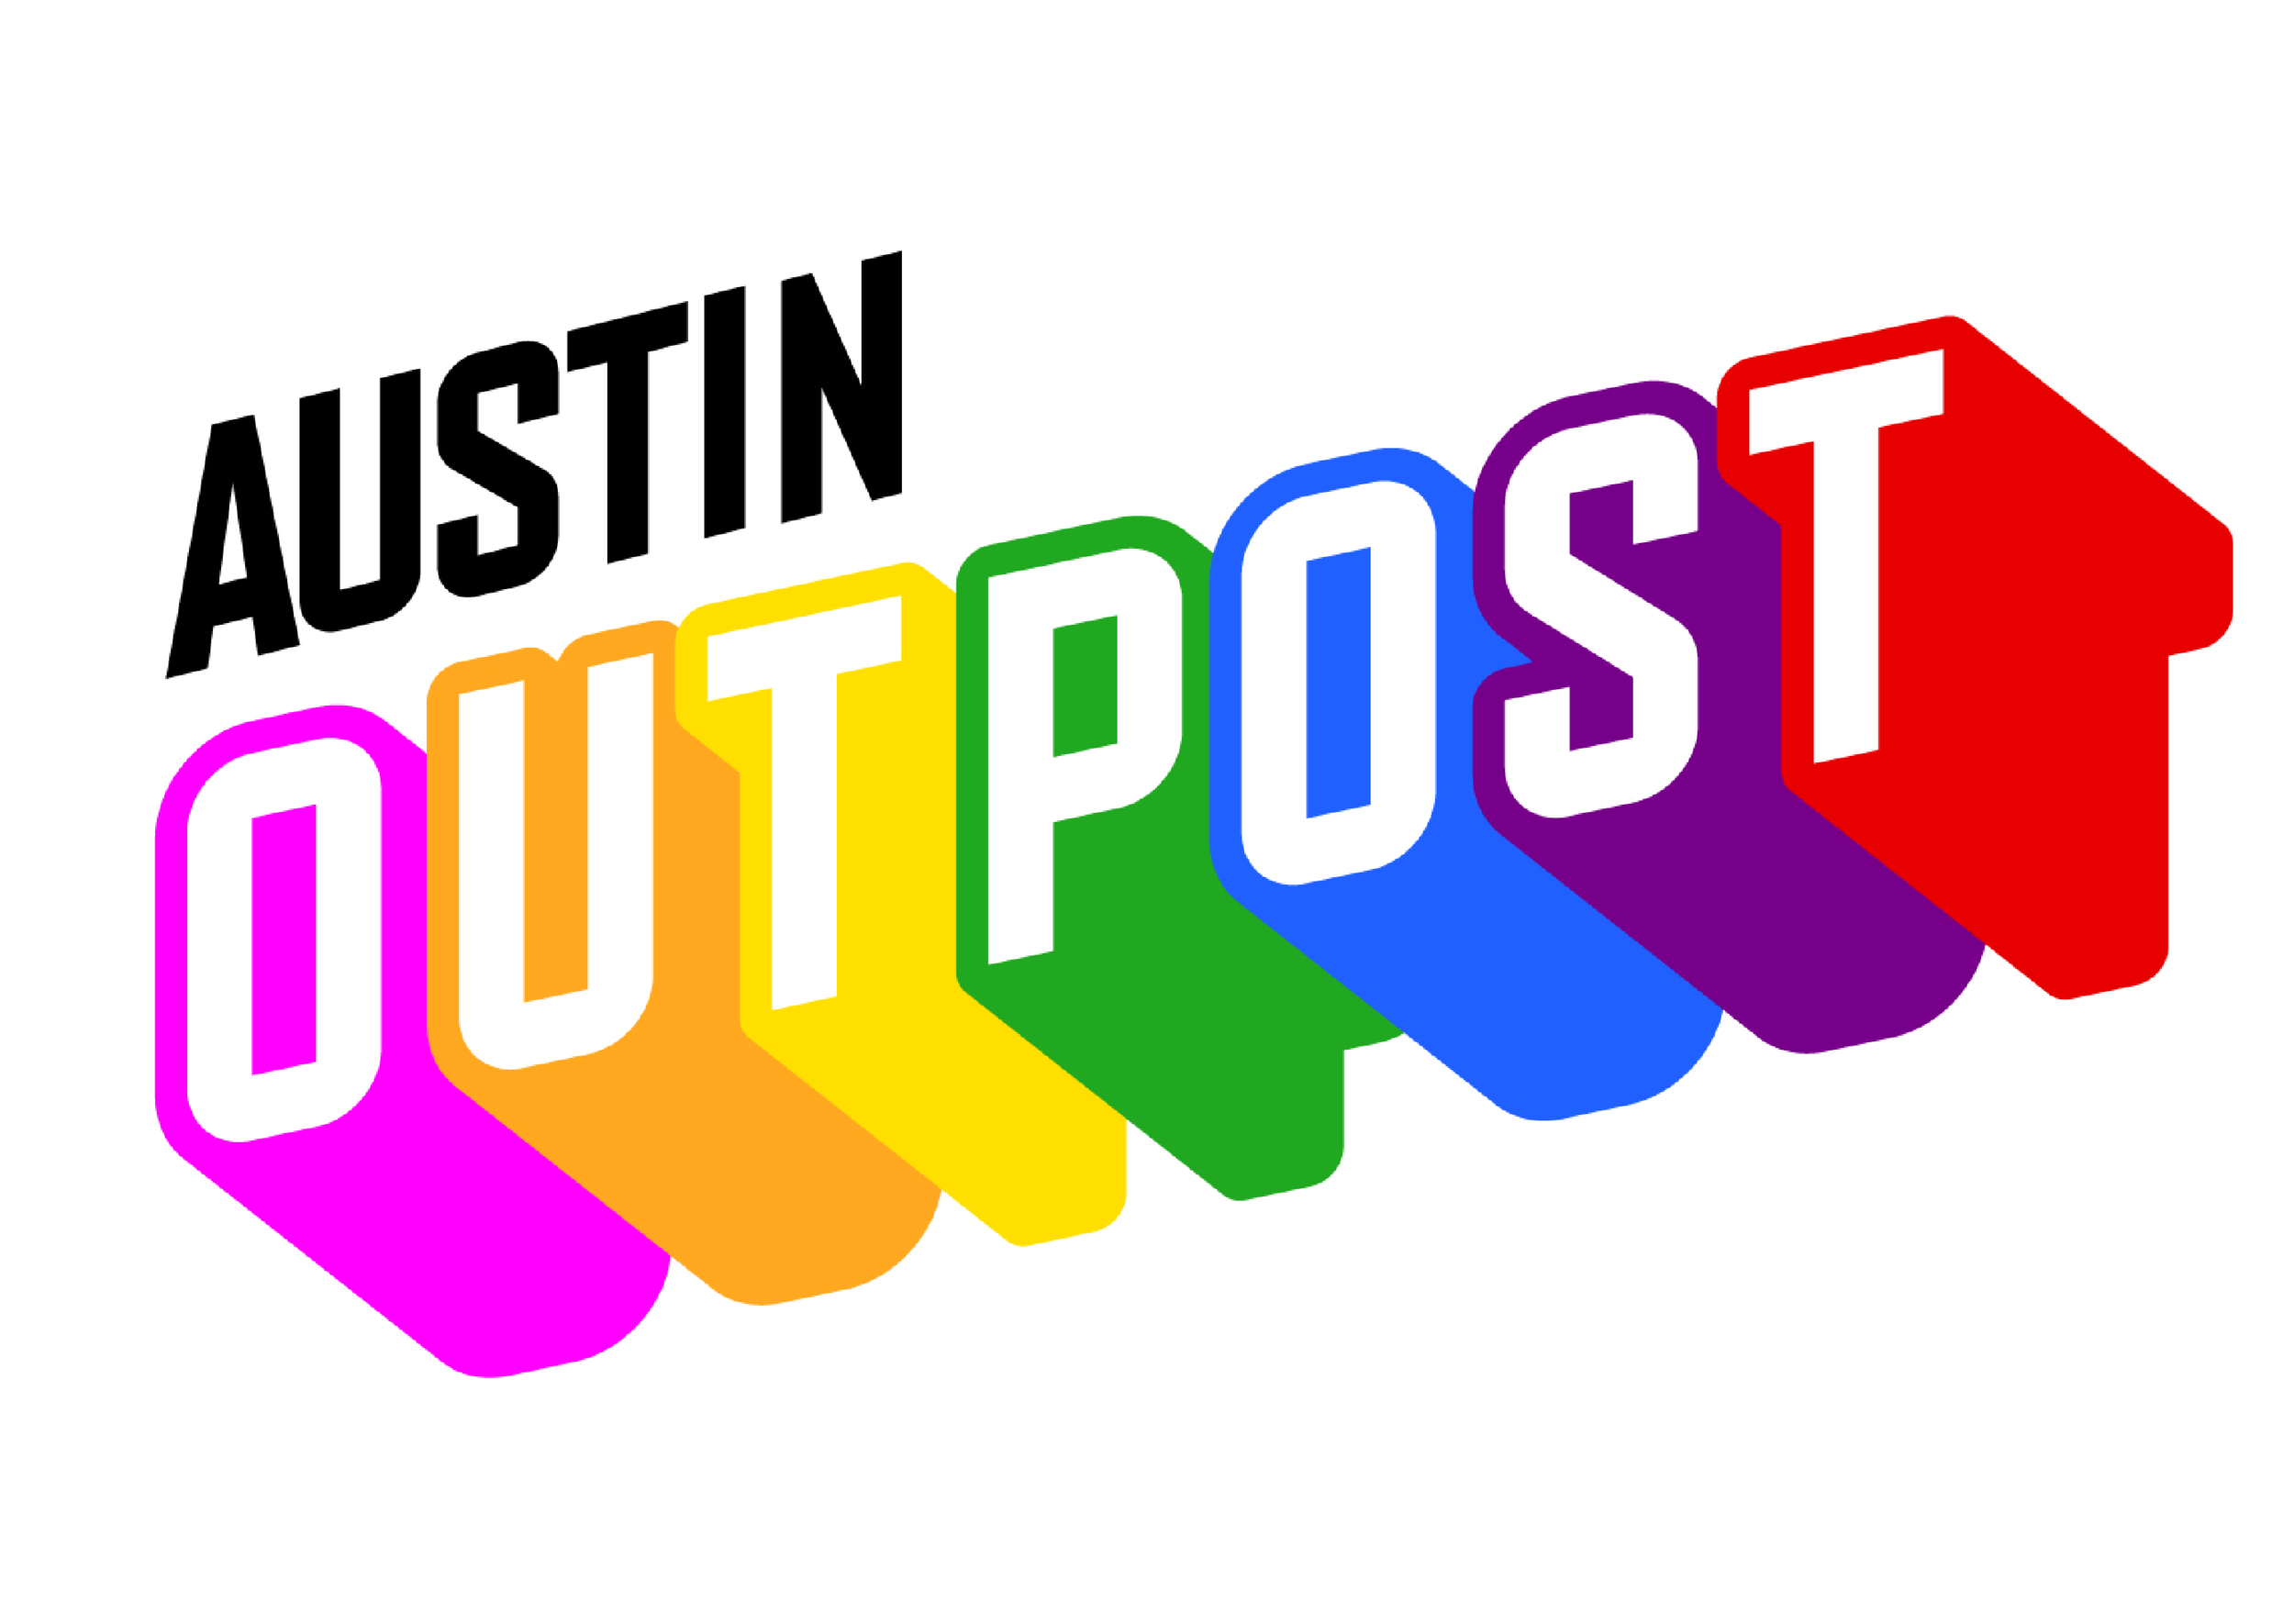 Austin Outpost-01.png